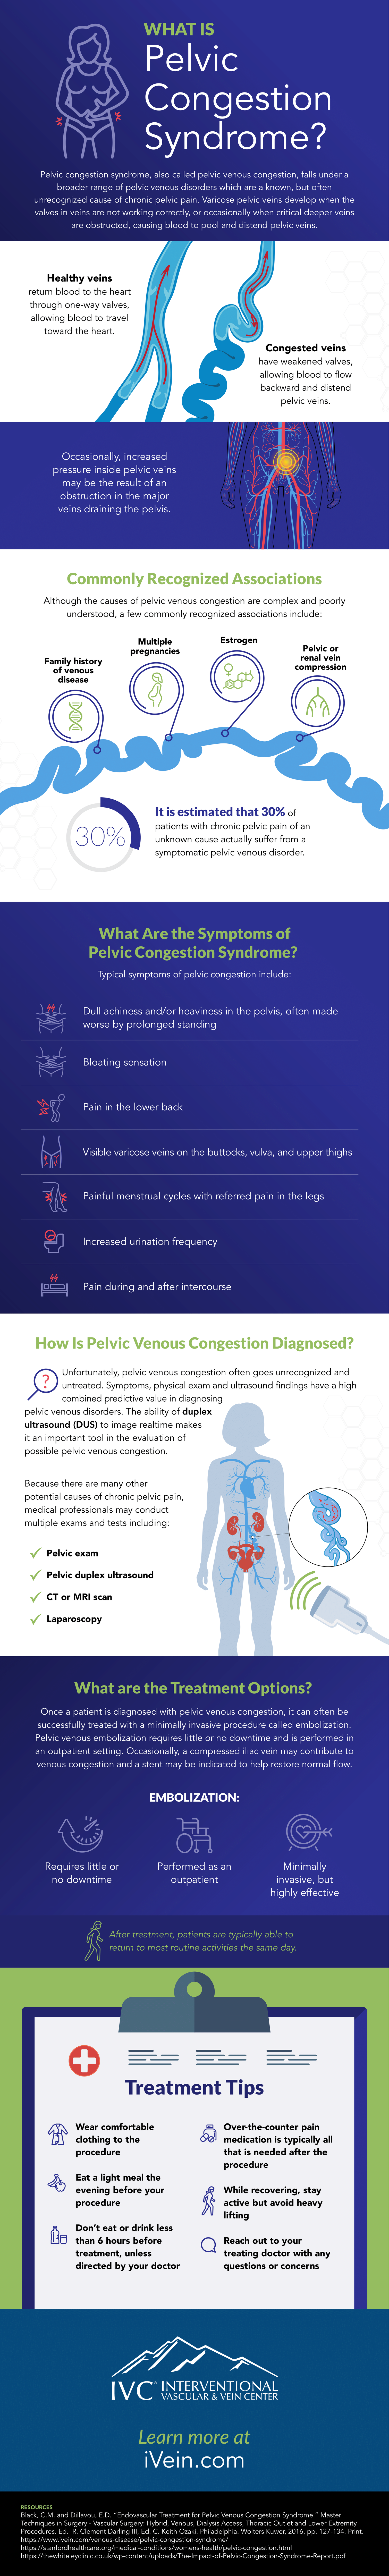 pelvic congestion syndrome infographic